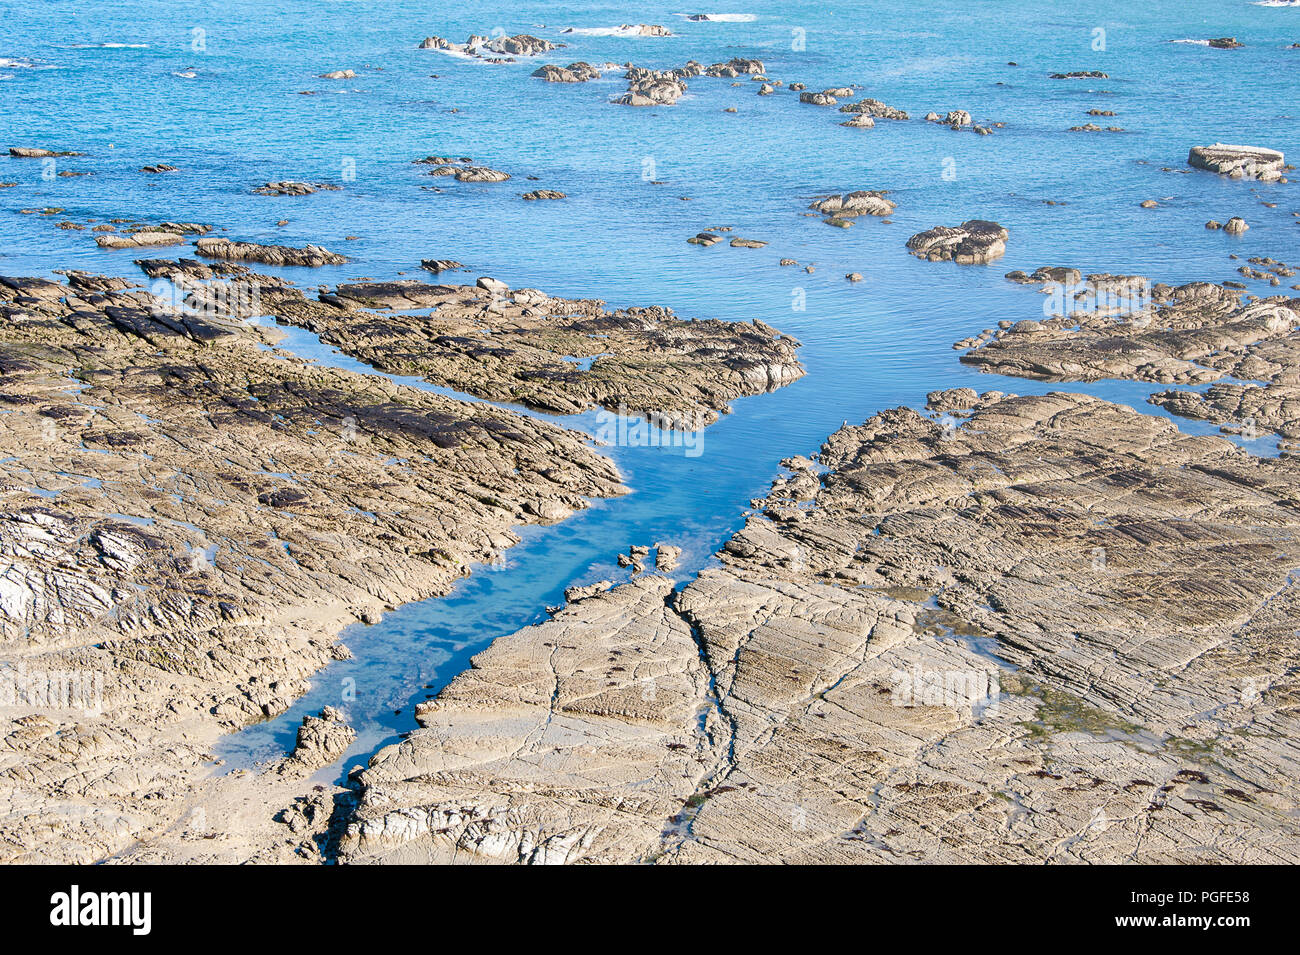 Aerial view to exposed rocks along shoreline. Turquoise sea contrasts with sandy coloured limestone shelf - Stock Image